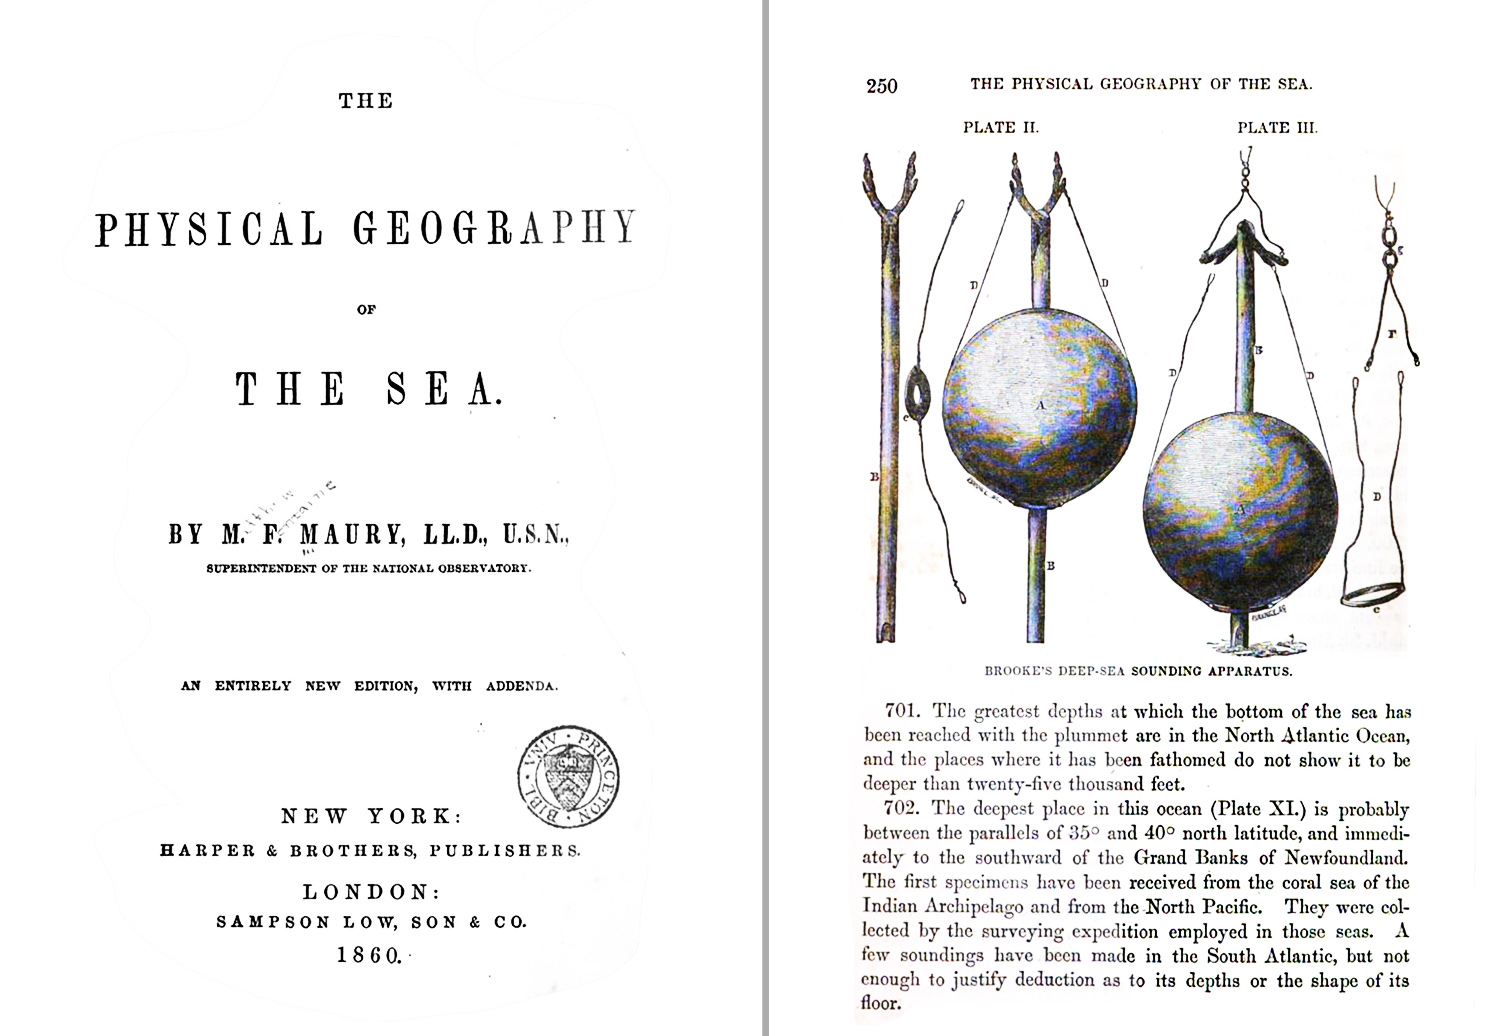 """In 1855, Matthew Maury published """"The Physical Geography of the Sea,"""" which is now credited as """"the first textbook of modern oceanography."""" The devices on the right hand side of the page are sounding instruments to measure the depth of the ocean."""